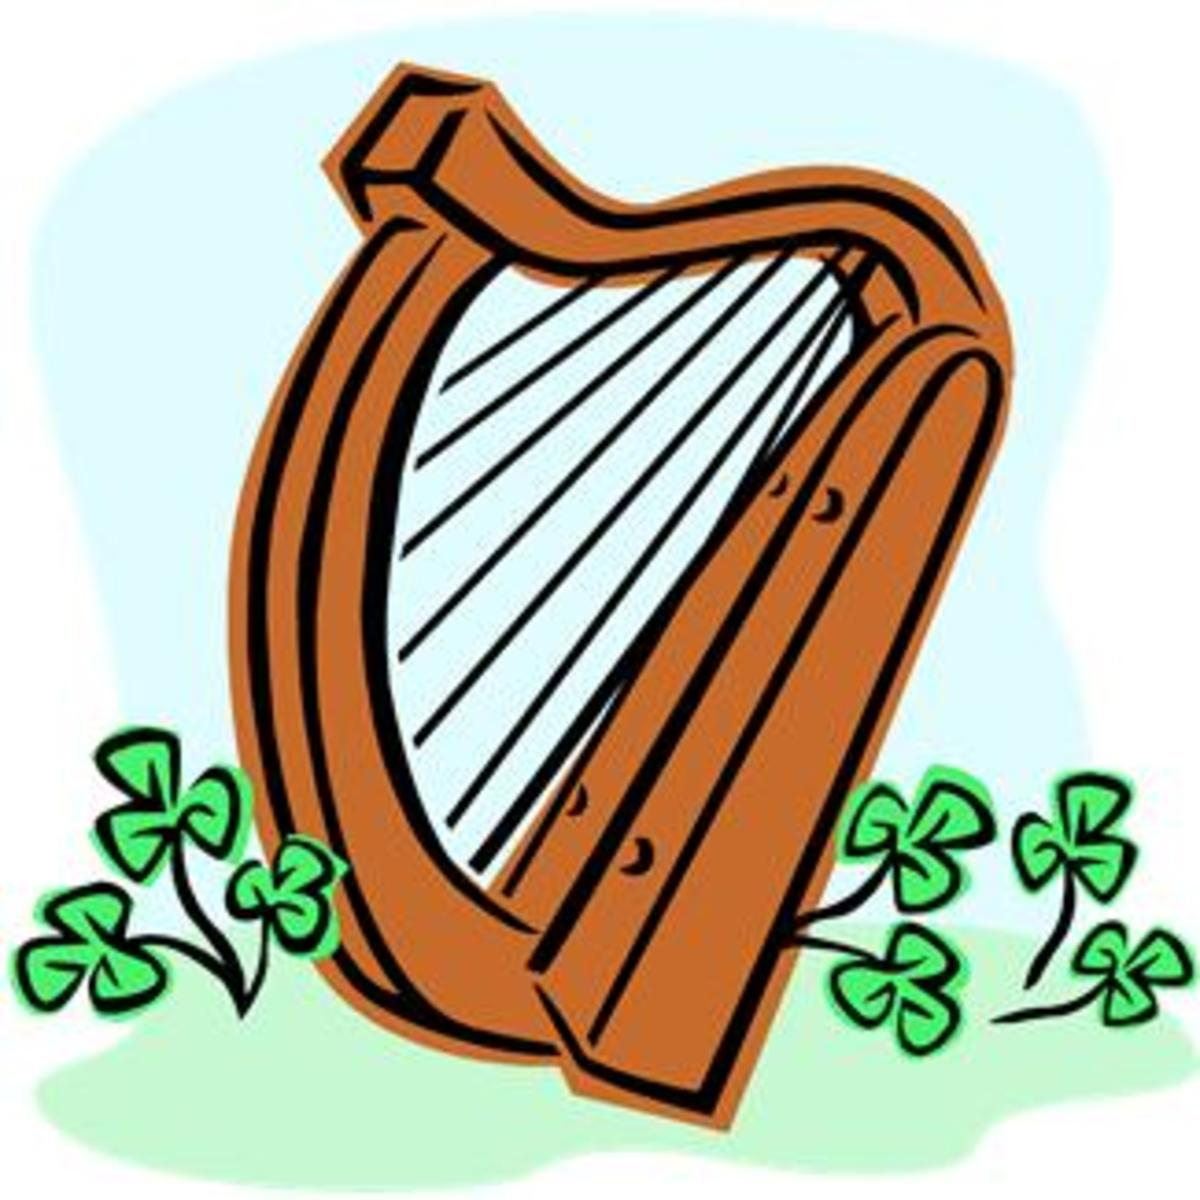 Irish Harp with Shamrocks